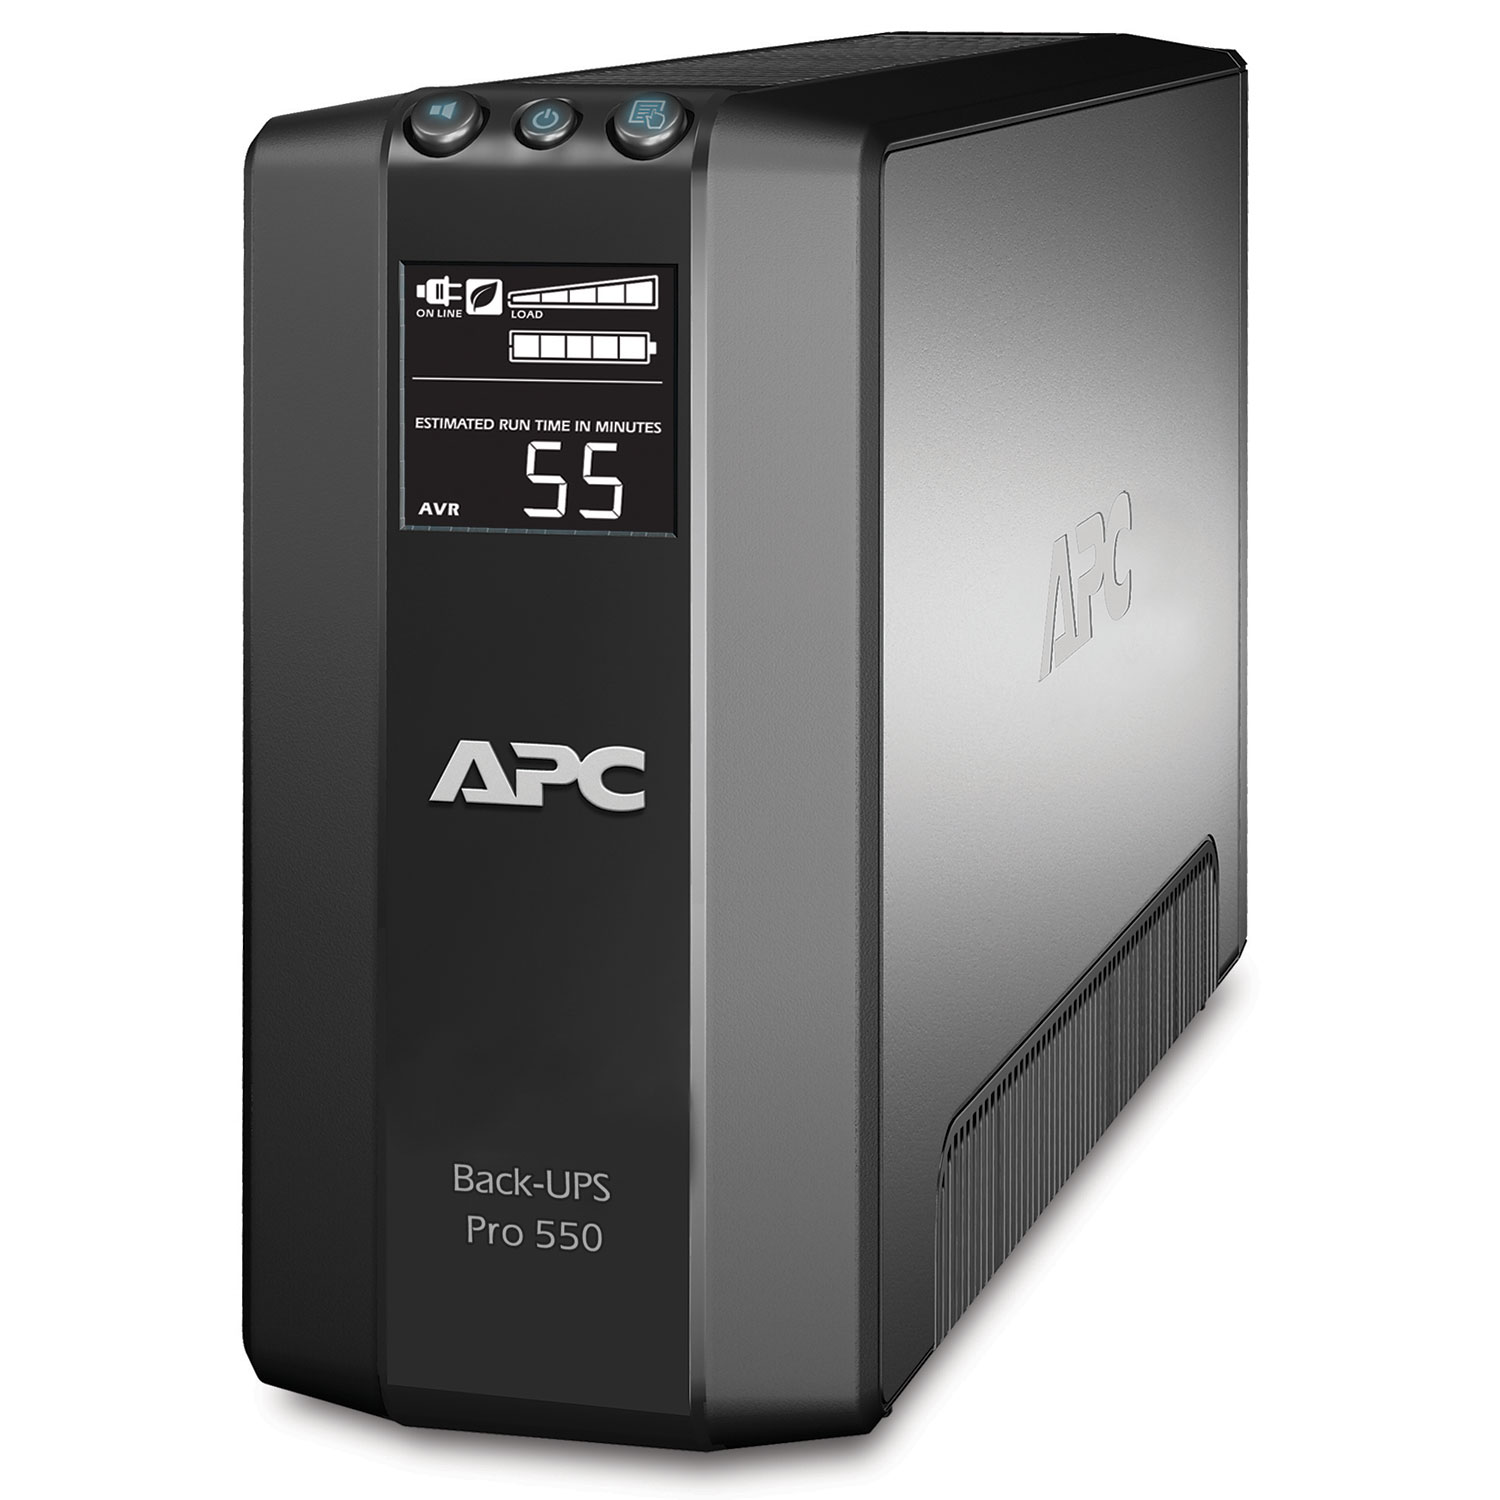 Onduleur APC Back-UPS Pro 550 Onduleur off-line monophasés 550V (USB)